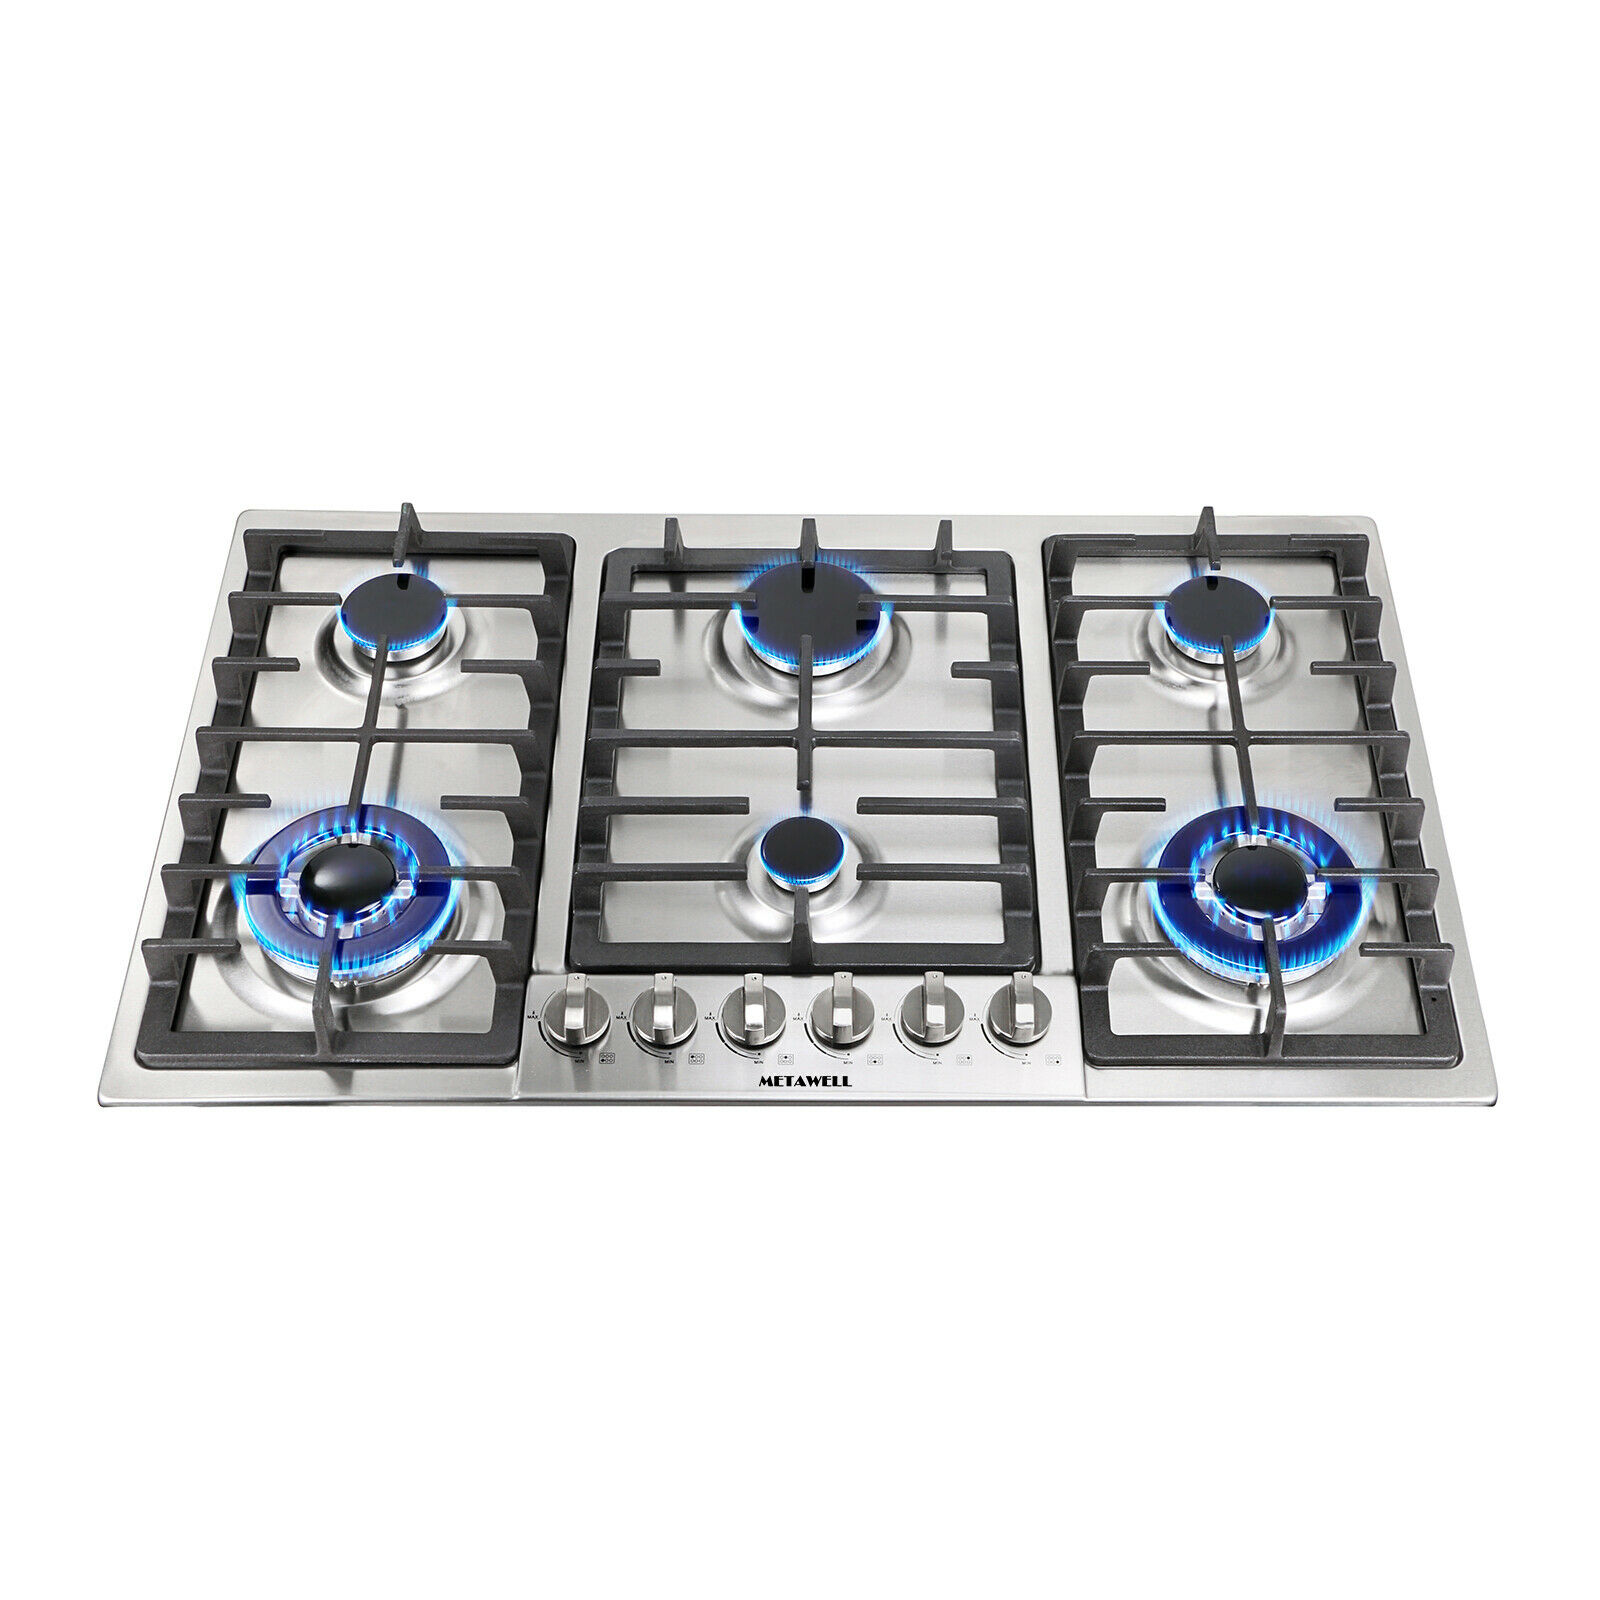 Viking Vgrt3606bss Stainless Steel 6 Burner Gas Cooktop Silver For Sale Online Ebay